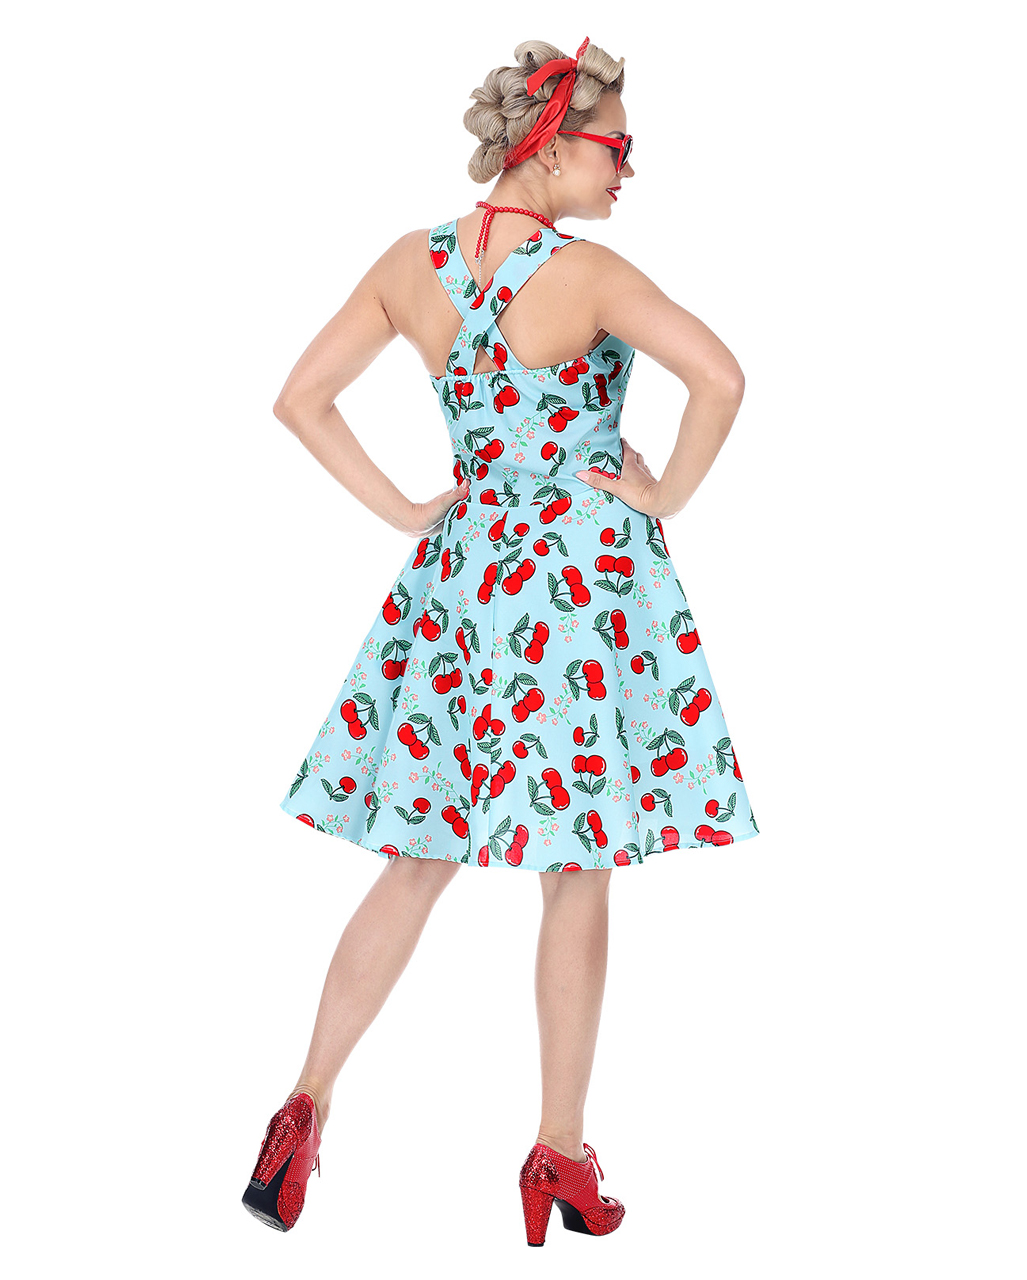 50's Rock'n Roll Dress With Petticoat